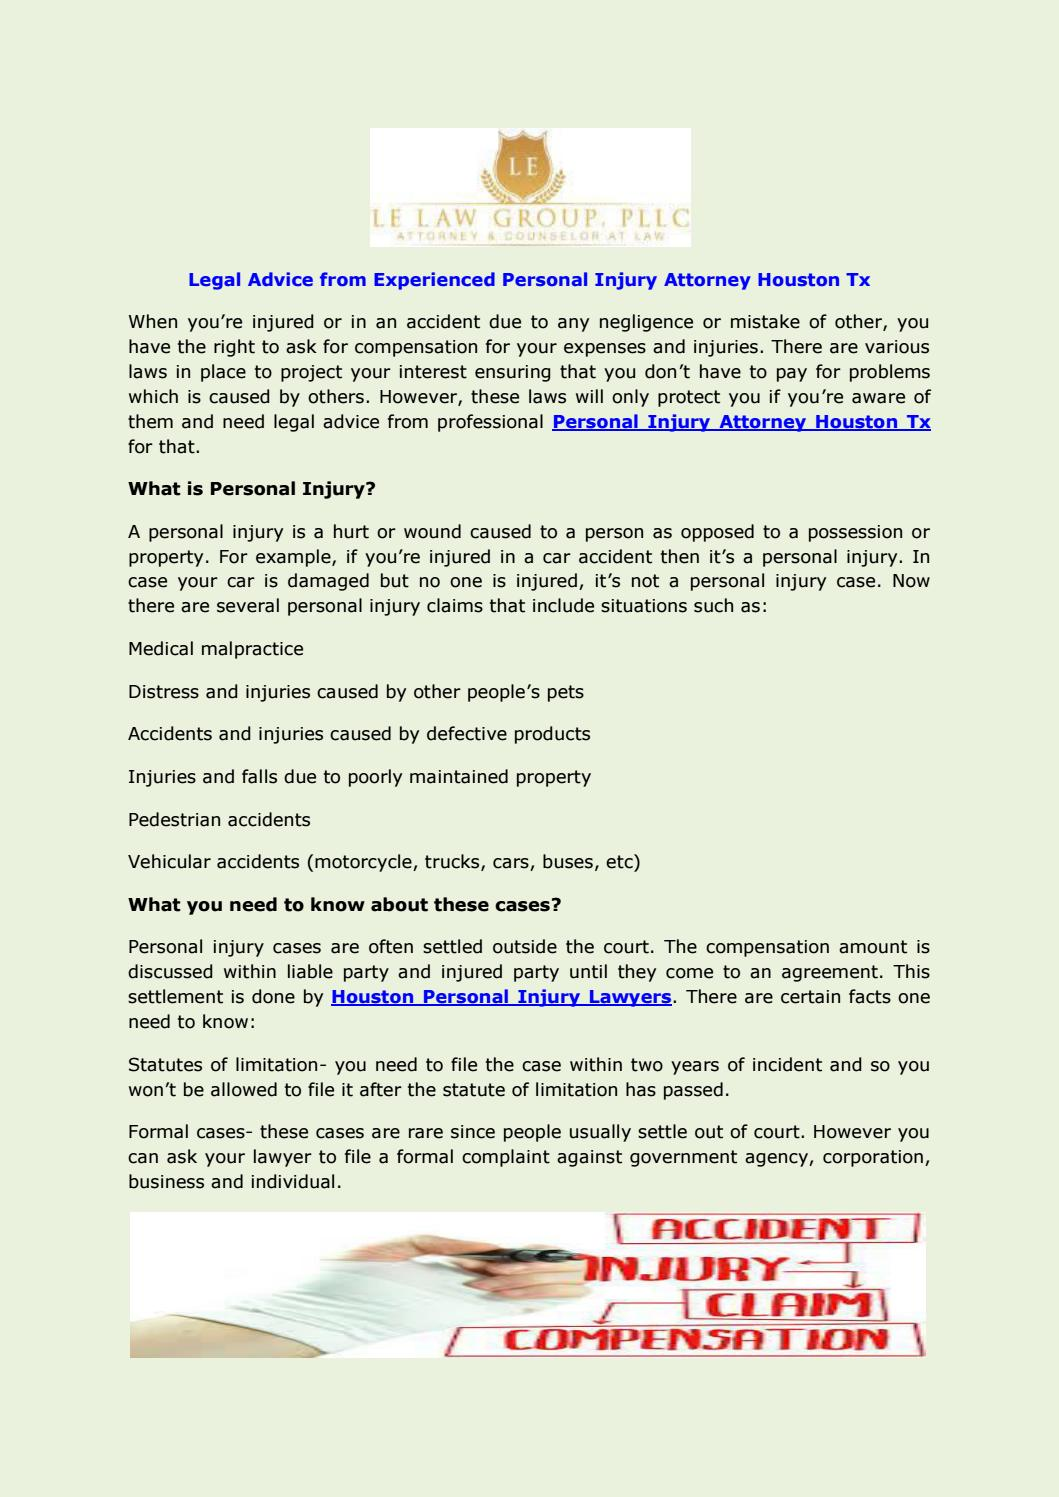 Legal advice from experienced personal injury attorney houston tx by legal advice from experienced personal injury attorney houston tx by lelawtx issuu spiritdancerdesigns Image collections